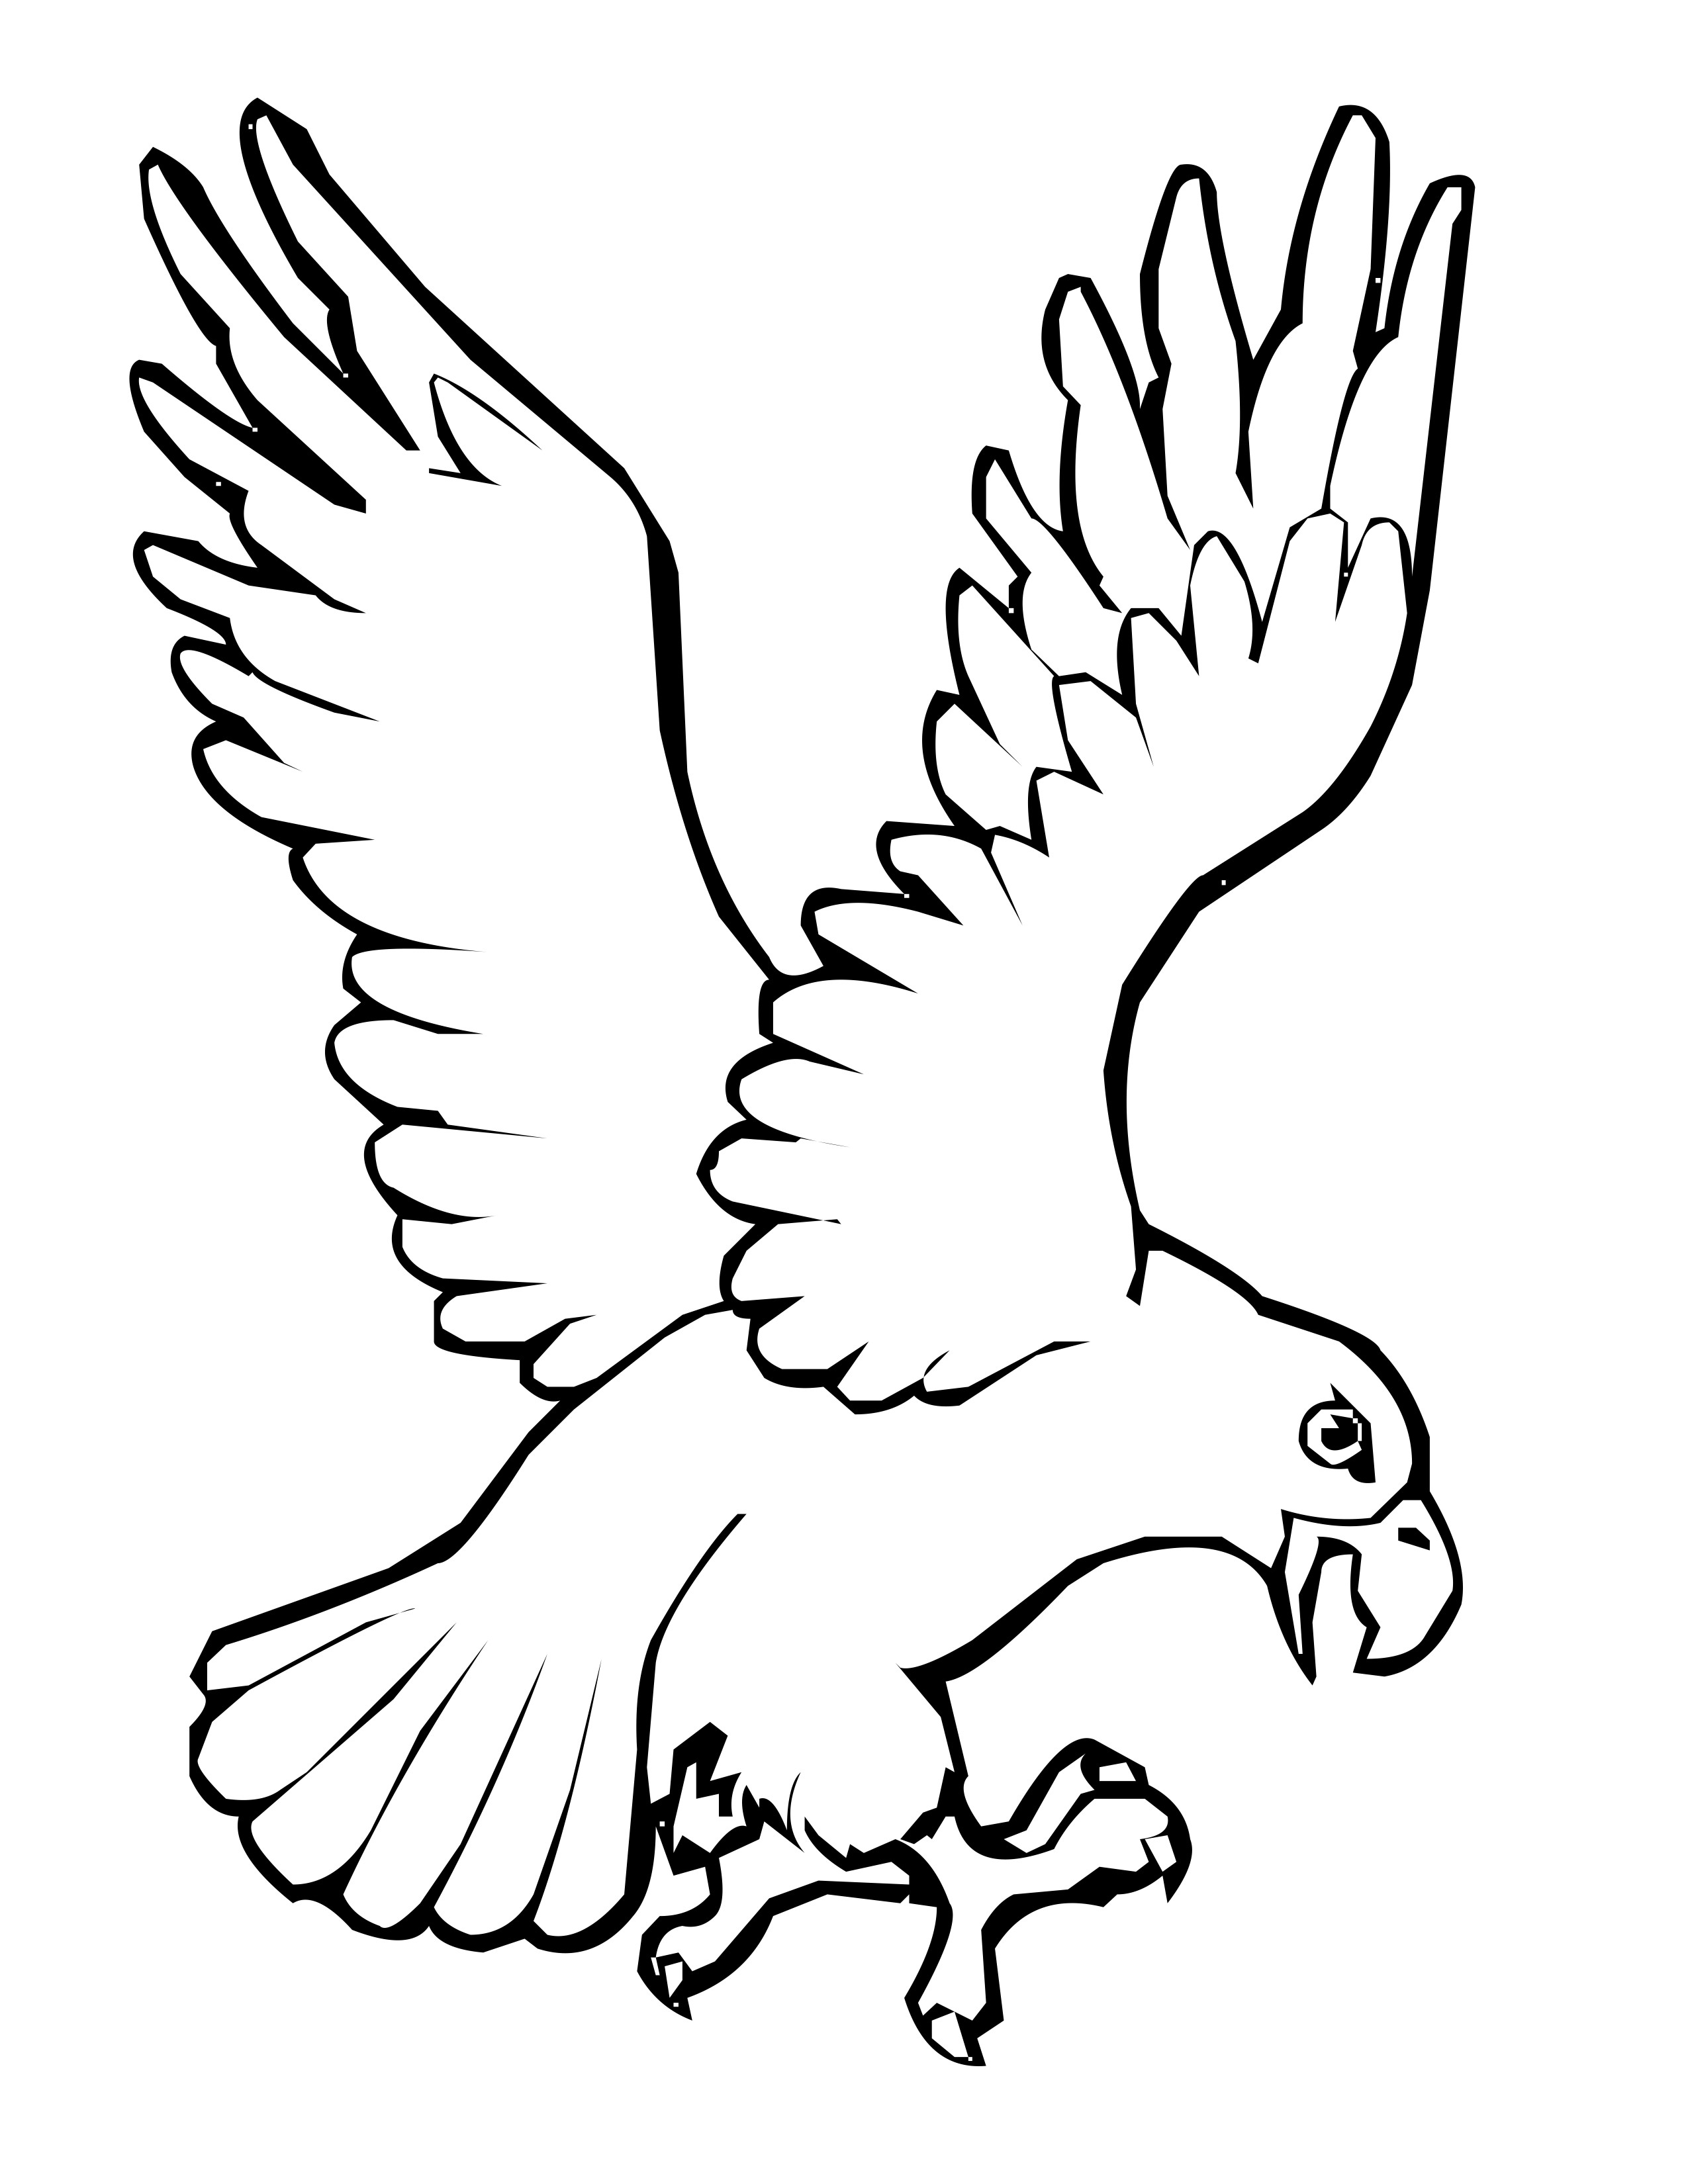 birds coloring pages birds coloring page happy family art birds pages coloring